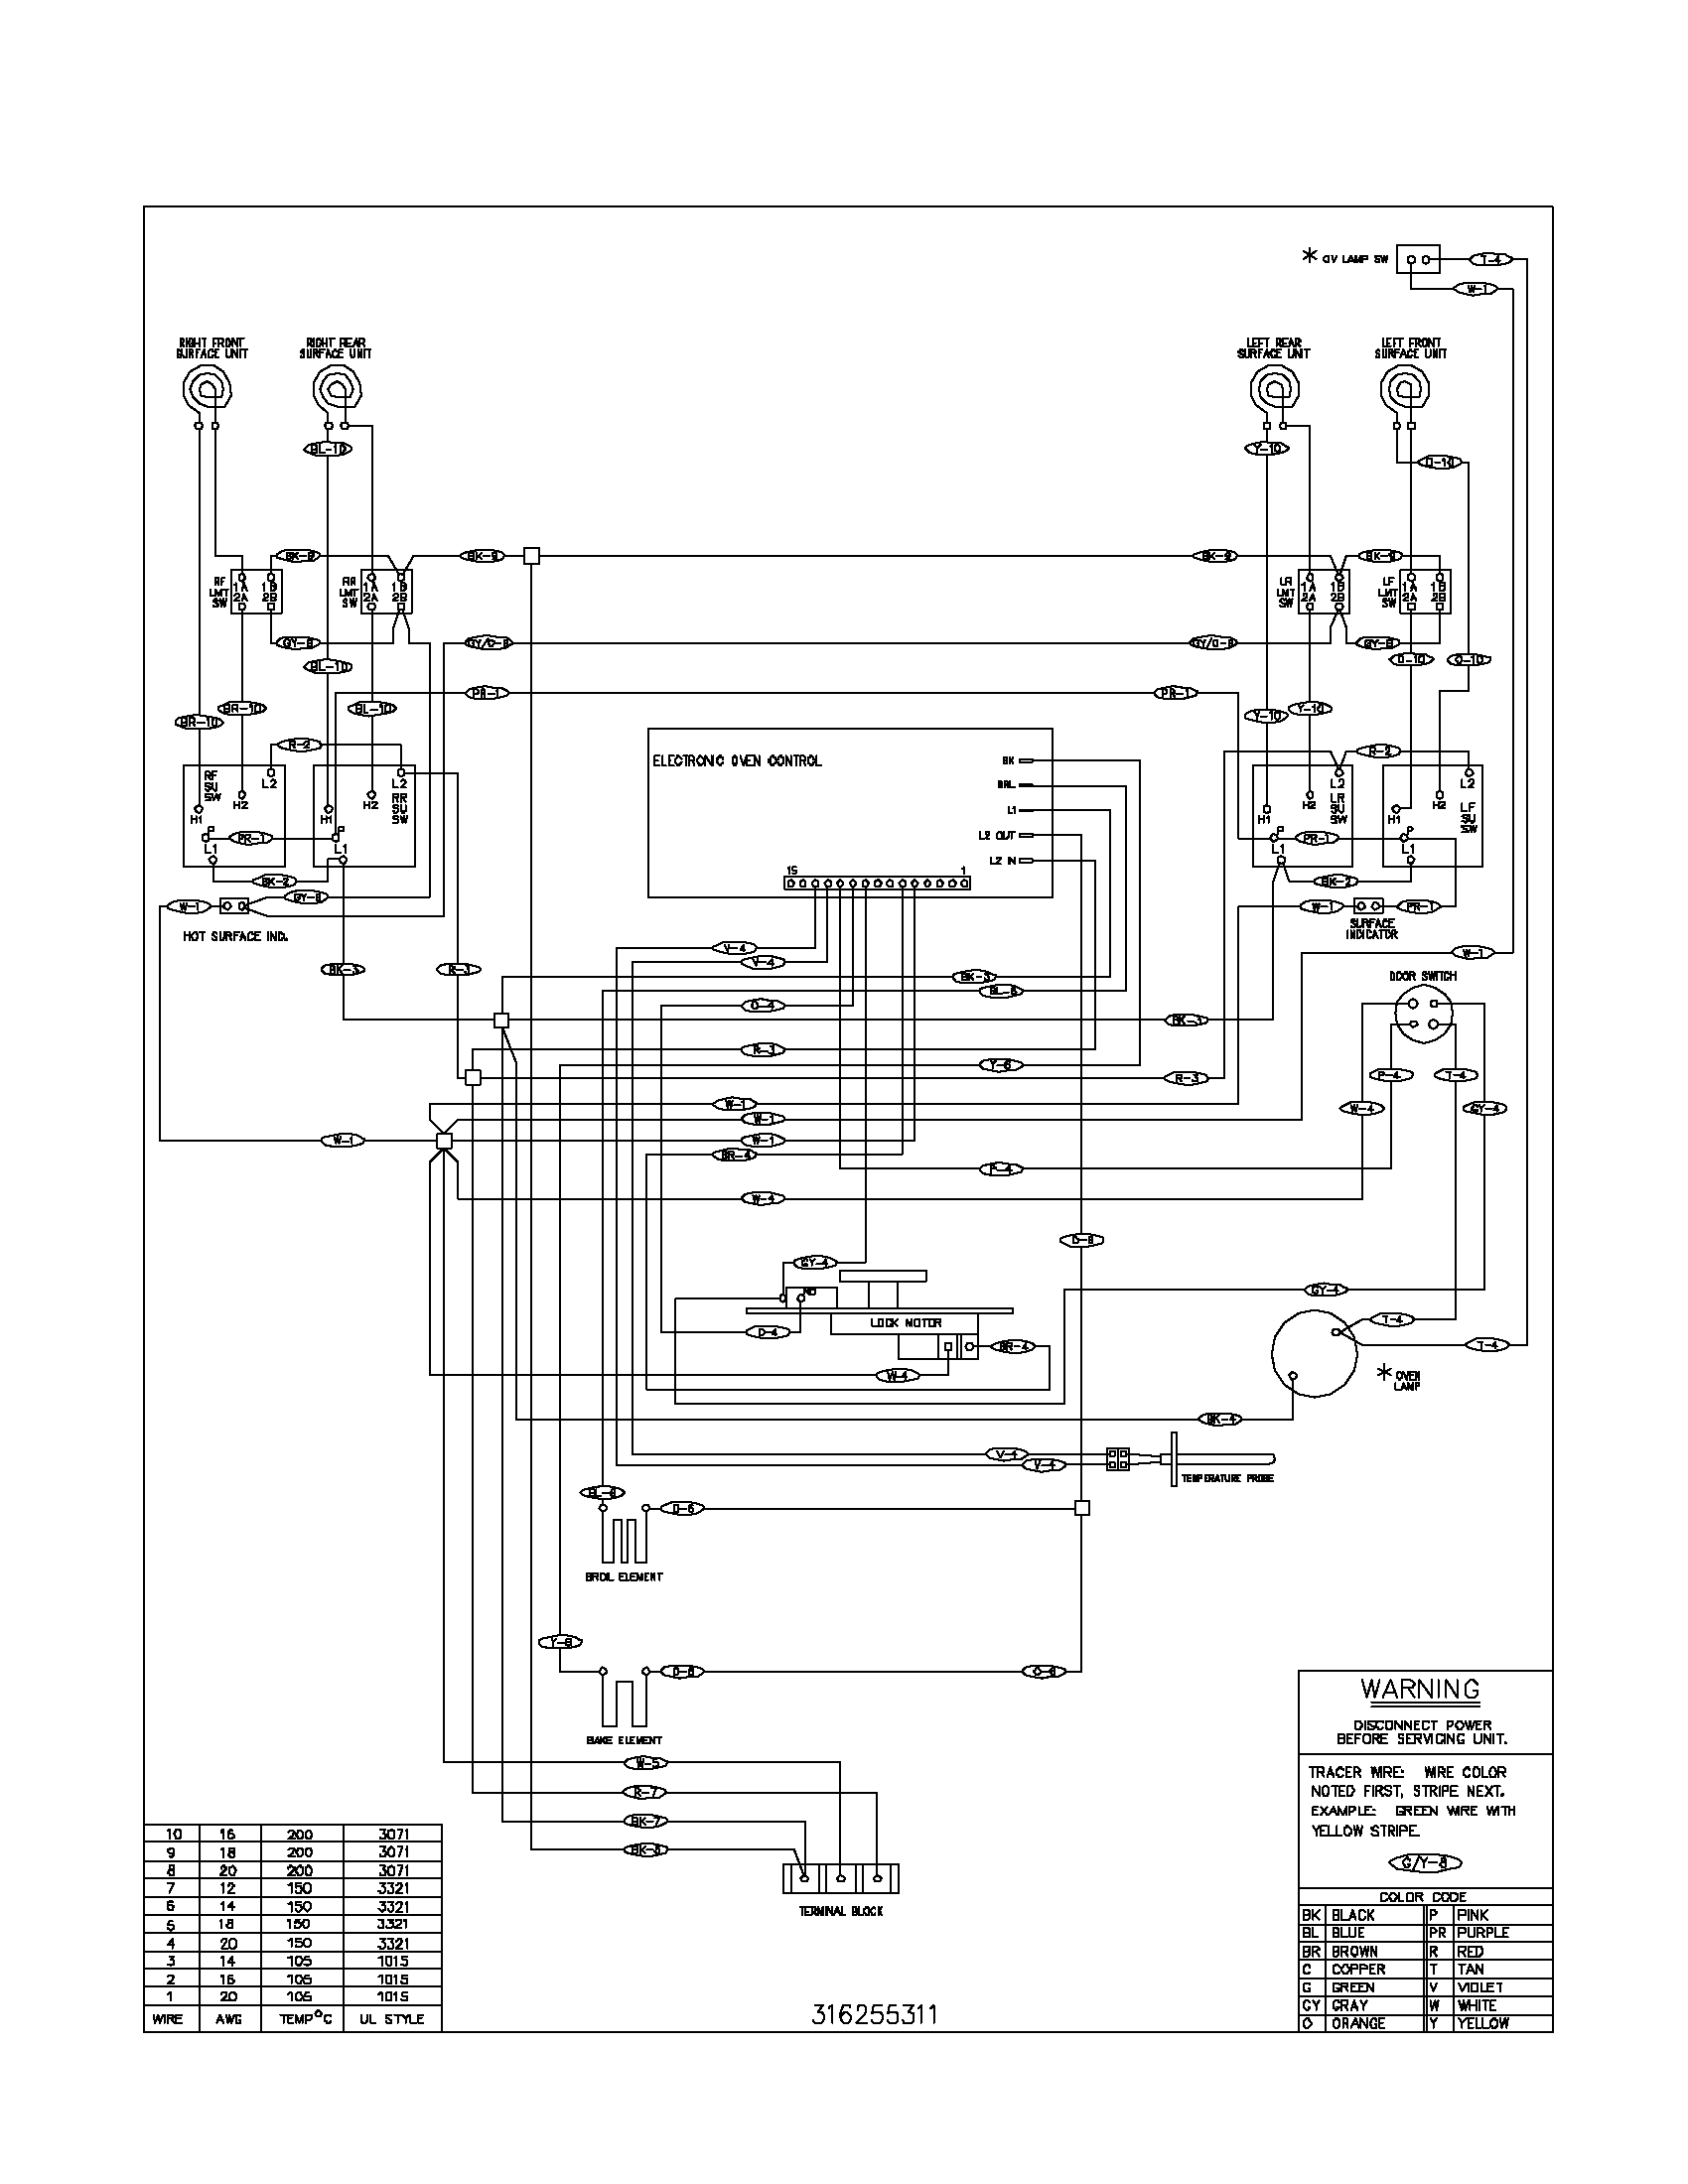 Unique Wiring Diagram Of Electric Cooker Diagram Diagramsample